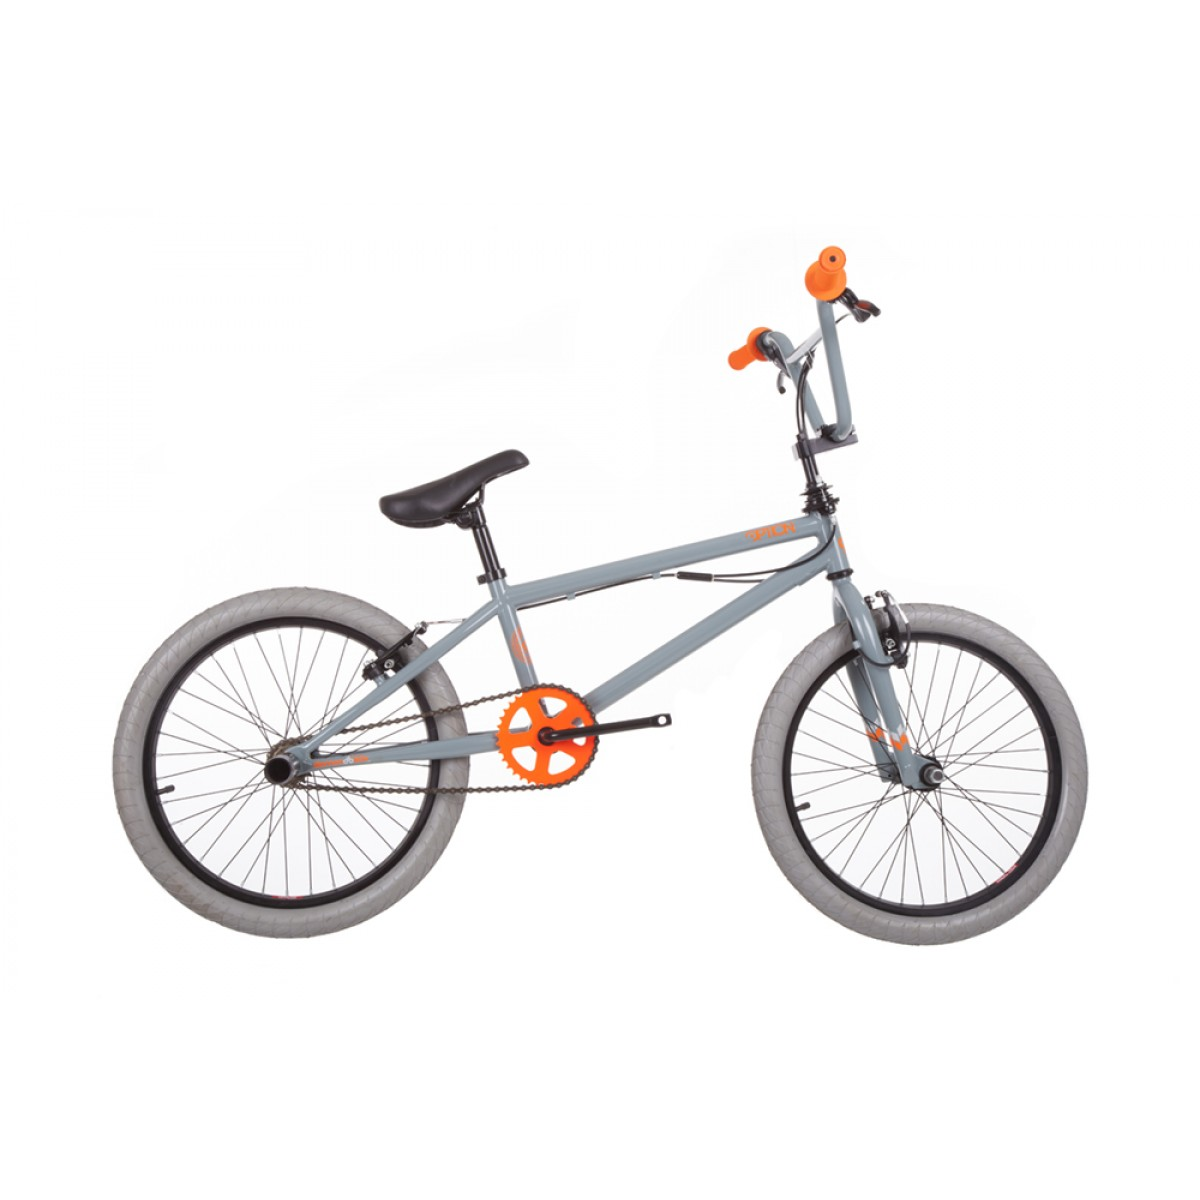 P190975 moreover 10428886 furthermore Diamondback Option 2 White Bmx Bike further 1 in addition Race Of Portugal Fia Wtcc. on touring car racing